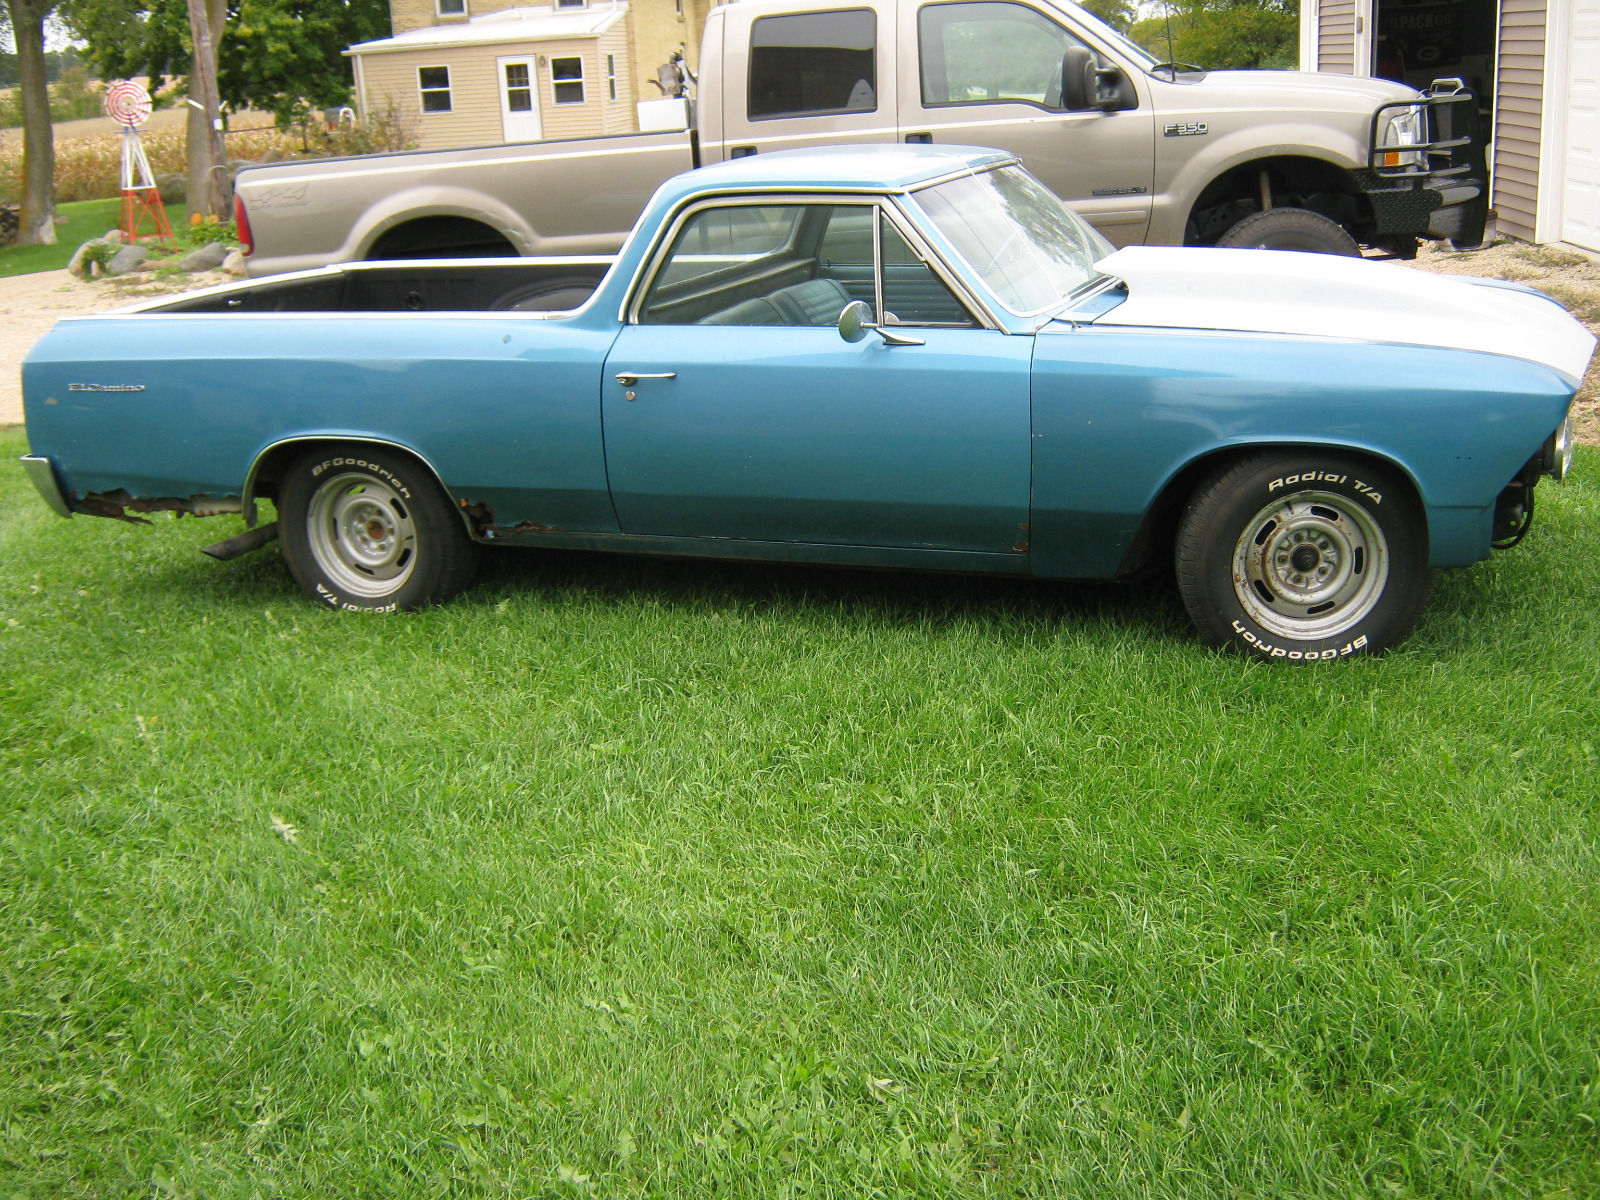 Solid base 1966 Chevrolet El Camino project for sale